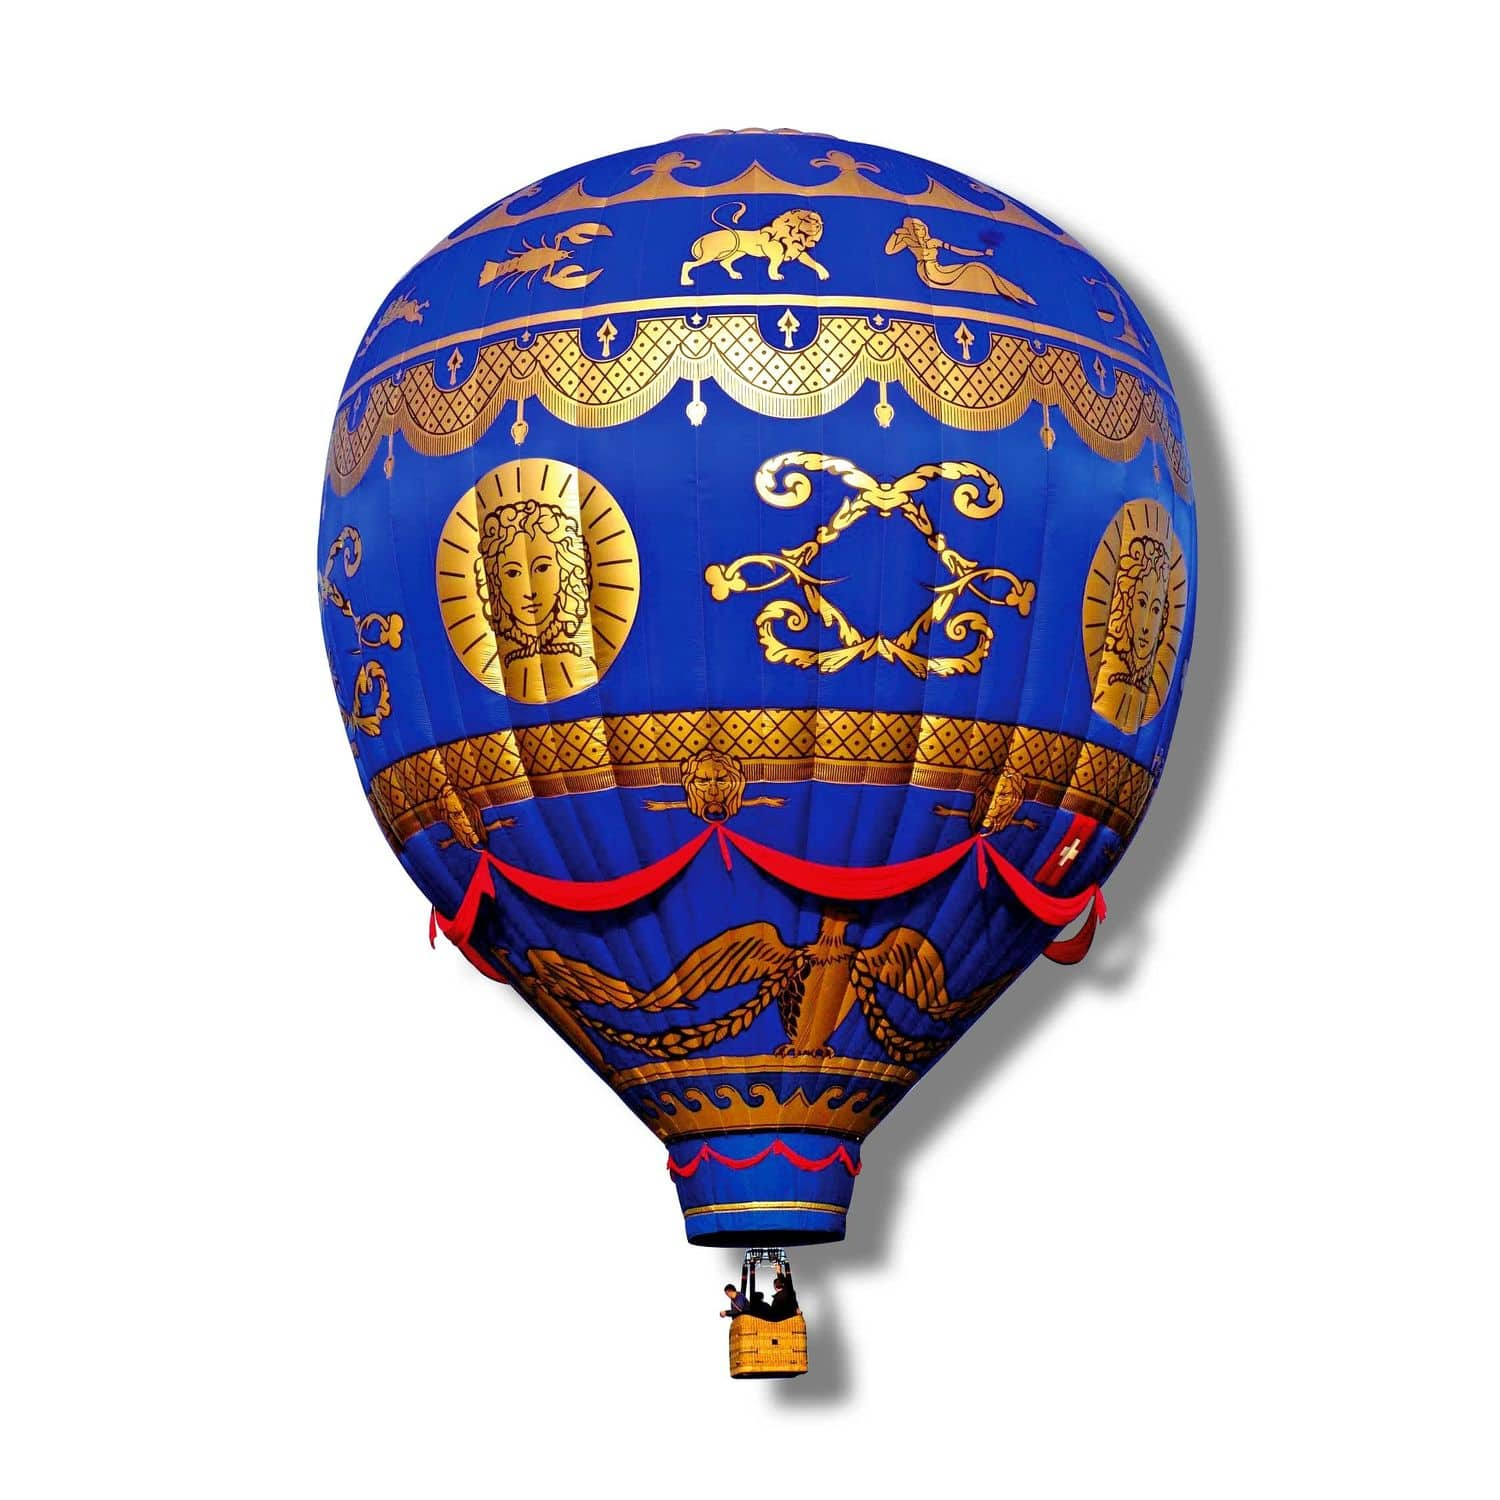 f1f869ecd682d advertising hot-air balloon   with basket   special event - Special Shapes